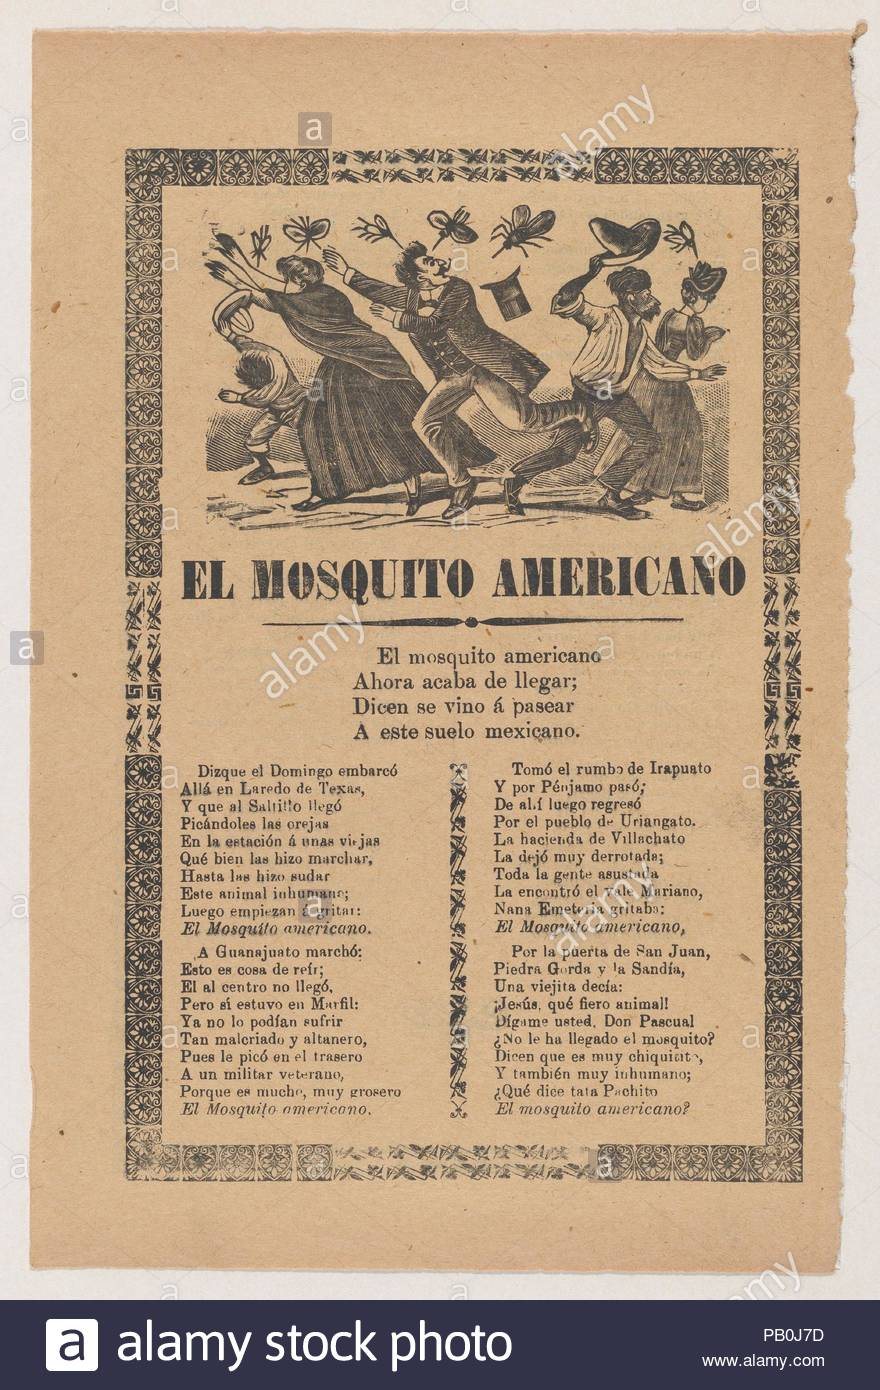 Broadsheet relating to the American Mosquito with verse critical of U.S. imperialism. Artist: José Guadalupe Posada (Mexican, 1851-1913). Dimensions: Sheet: 11 13/16 × 7 7/8 in. (30 × 20 cm). Publisher: Antonio Vanegas Arroyo (1850-1917, Mexican). Date: 1903. Museum: Metropolitan Museum of Art, New York, USA. - Stock Image